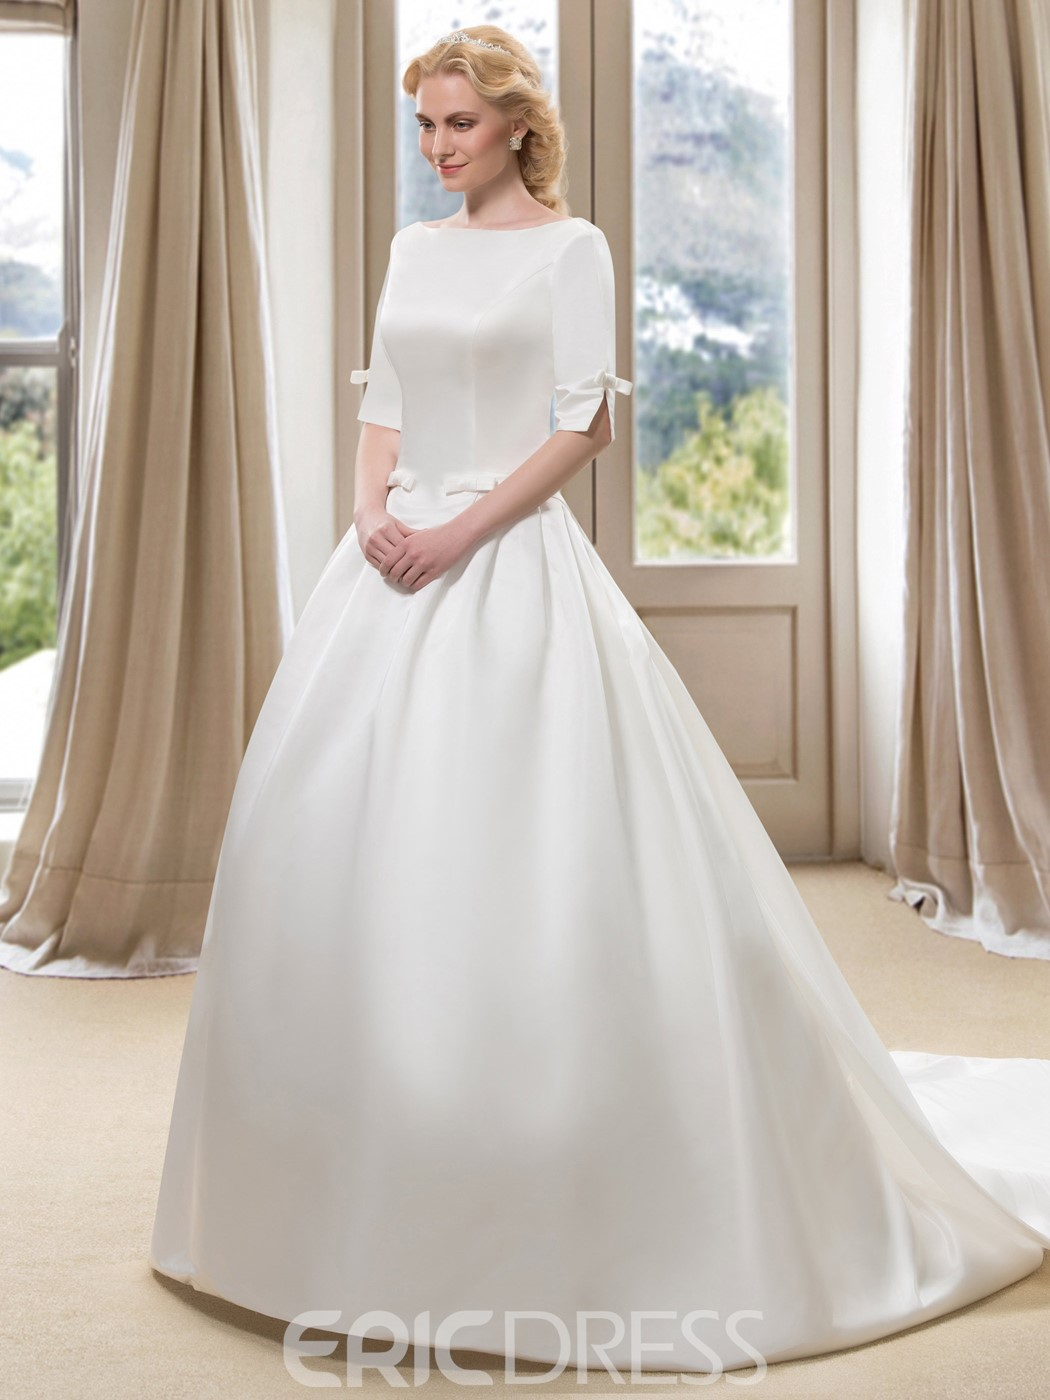 ... Modest Bateau Neck Half Sleeve Satin Ball Gown Wedding Dress With  Watteau Train ...